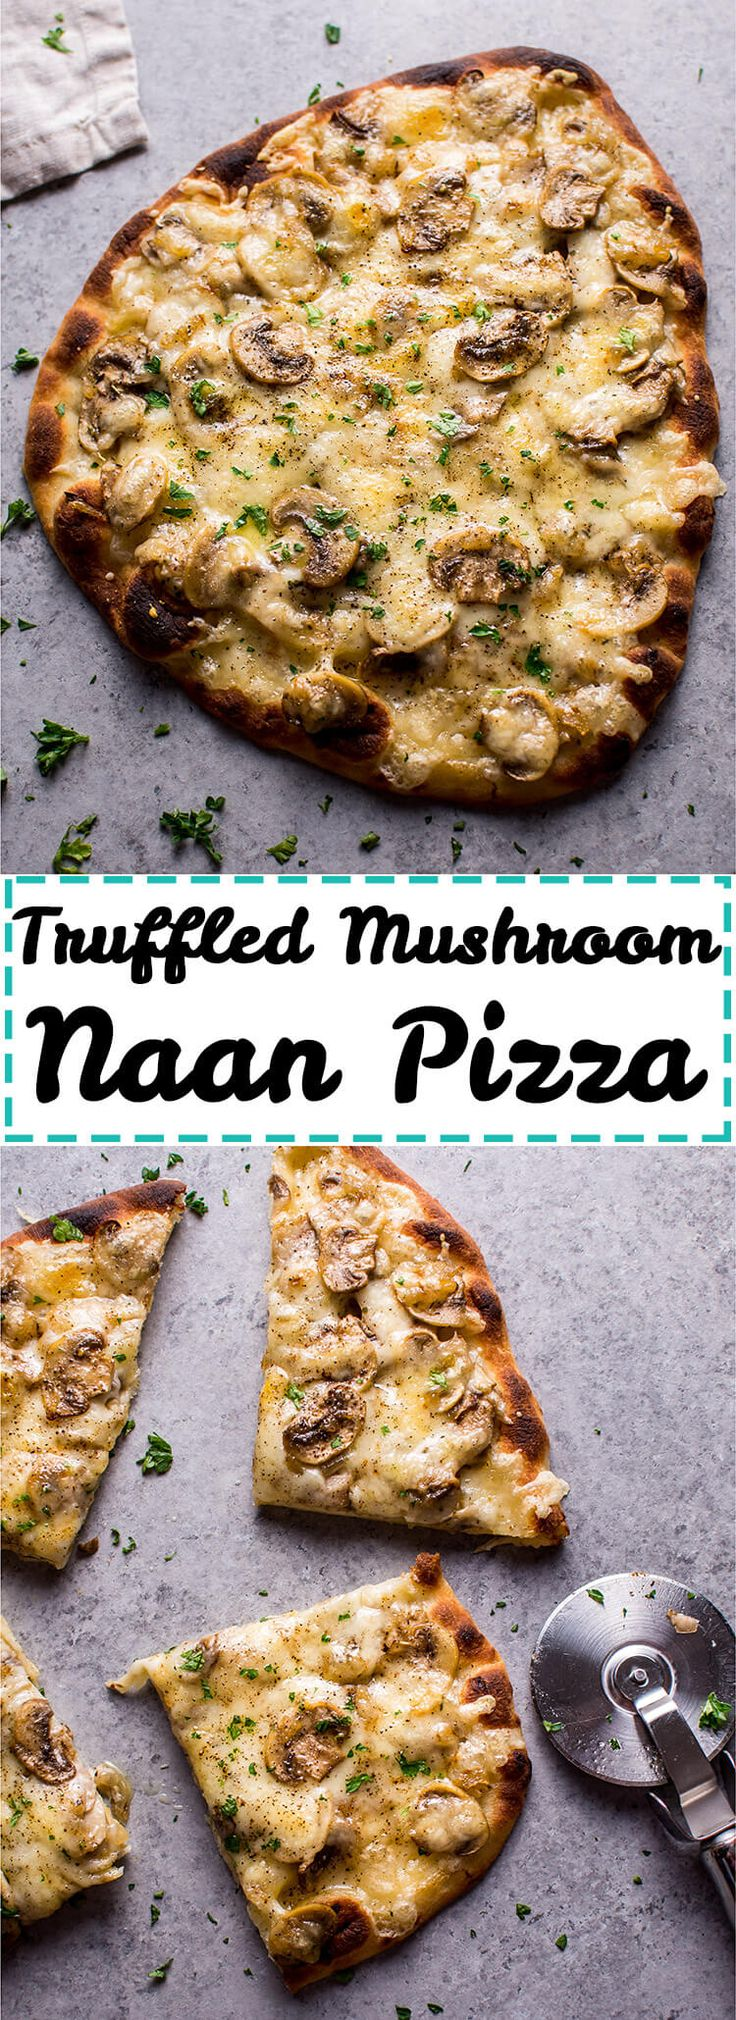 This vegetarian truffled mushroom naan pizza is super easy, a little fancy, and tastes way better than you'd expect from a quick homemade pizza! Ready in less than 30 mins!